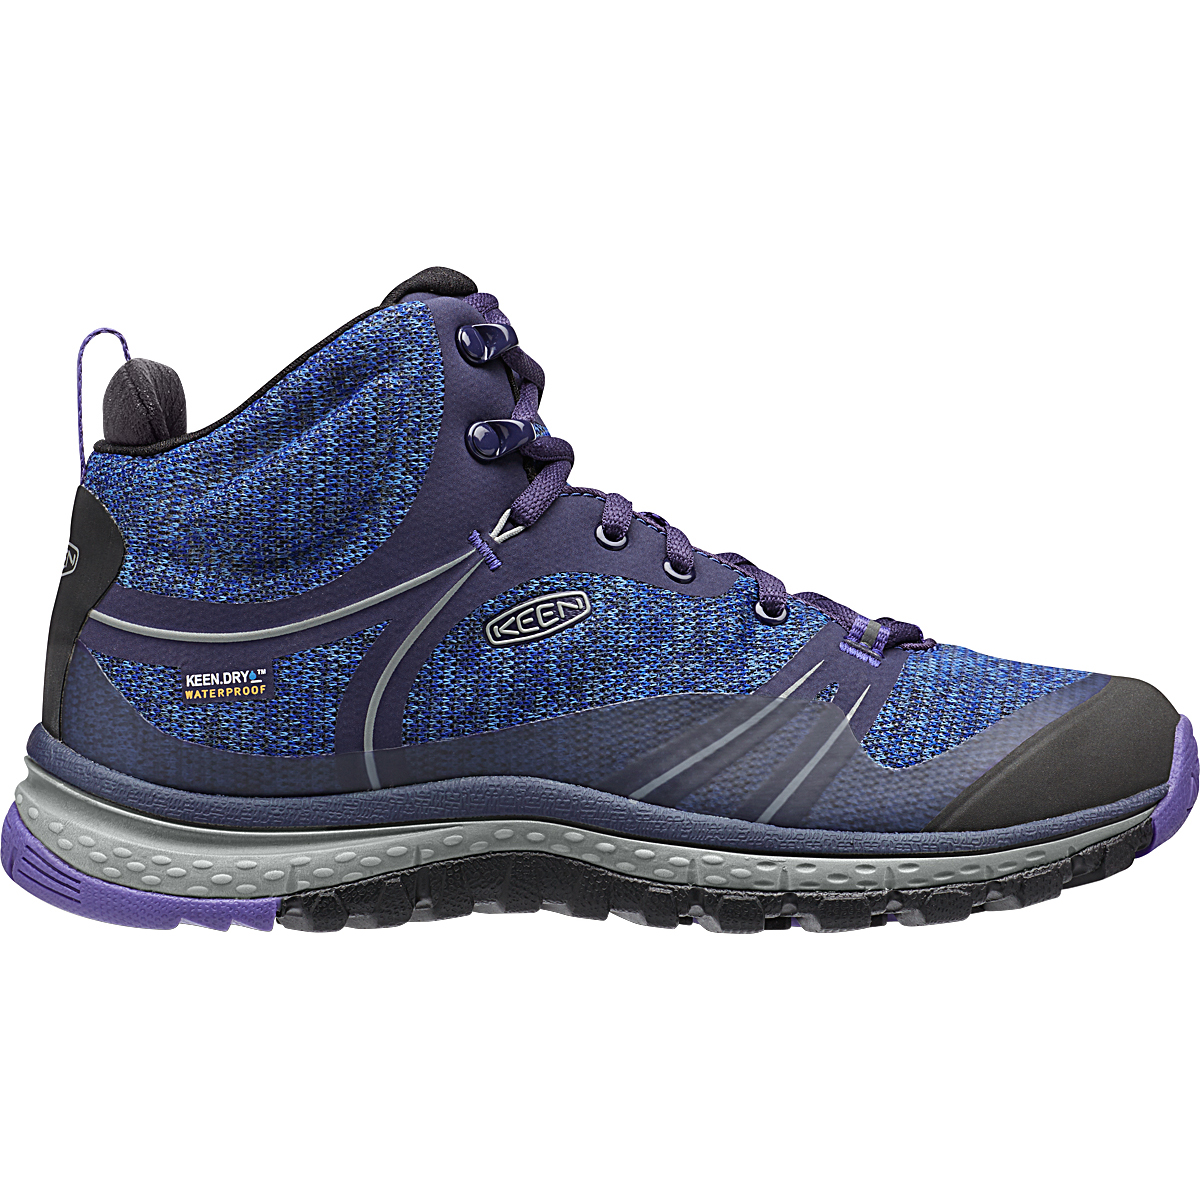 Keen Women's Terradora Waterproof Mid Hiking Boots - Blue, 8.5